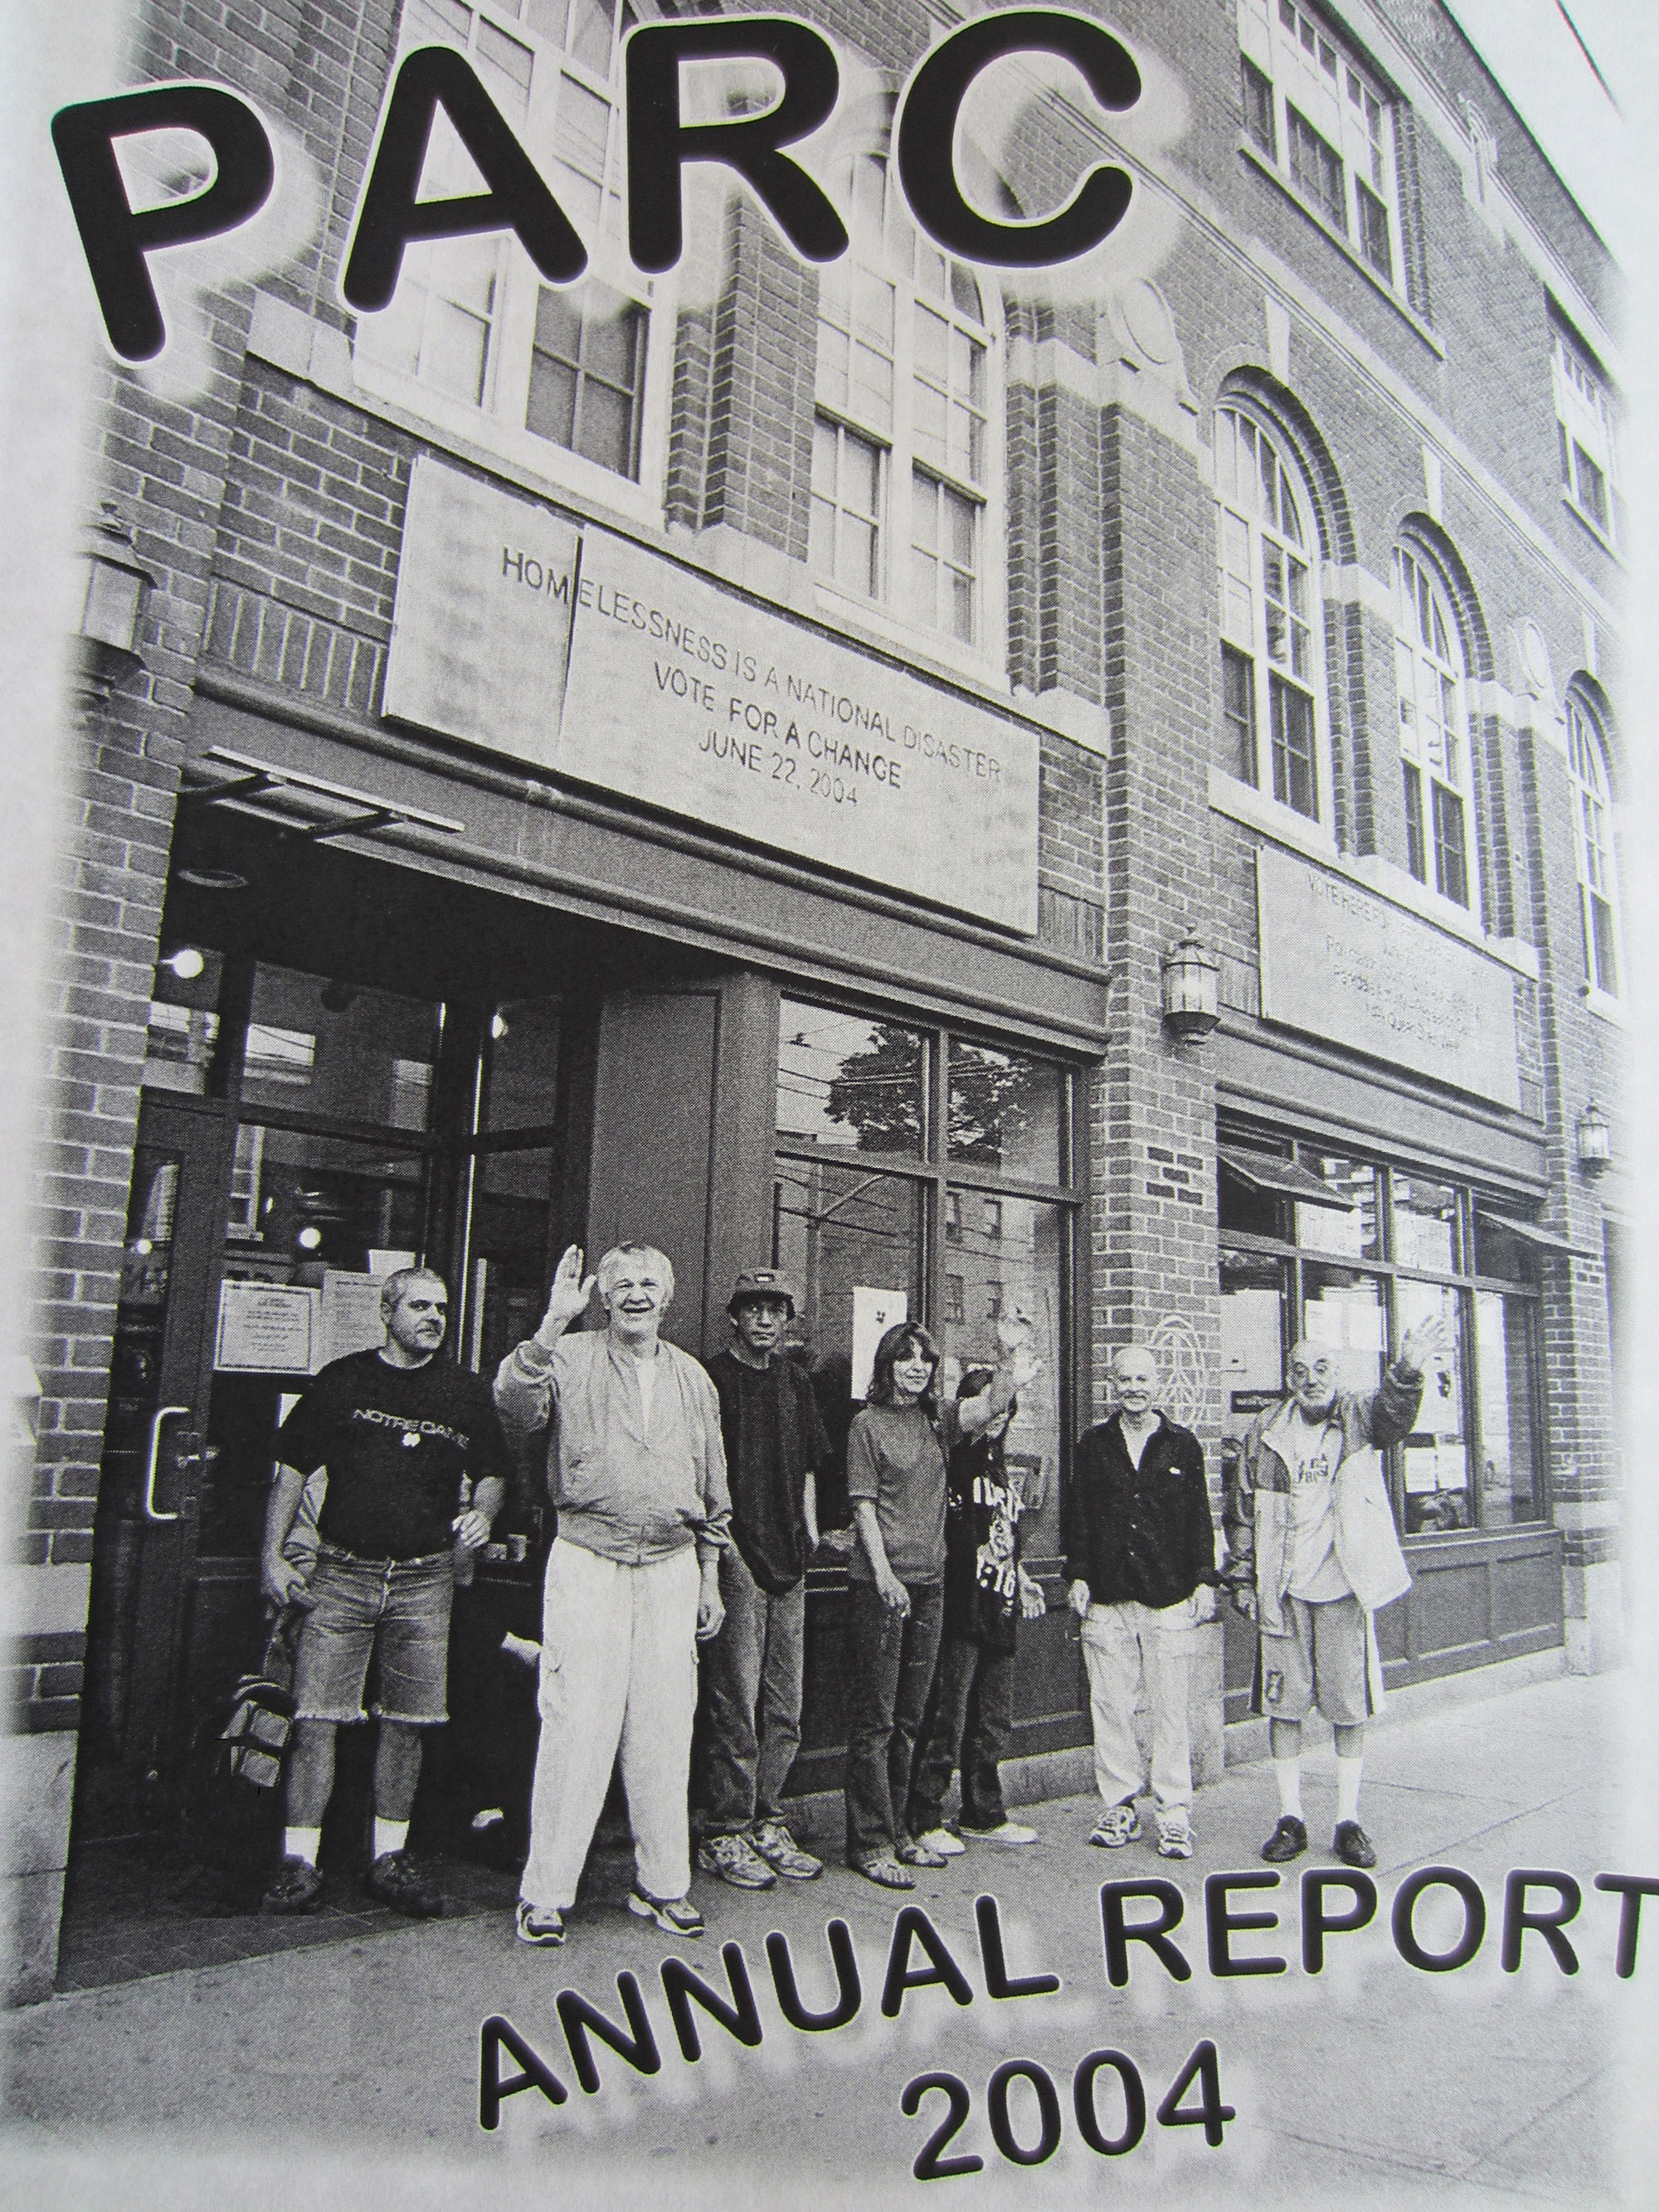 Photograph taken outside the front of PARC with group of seven PARC members waving to the person taking the picture